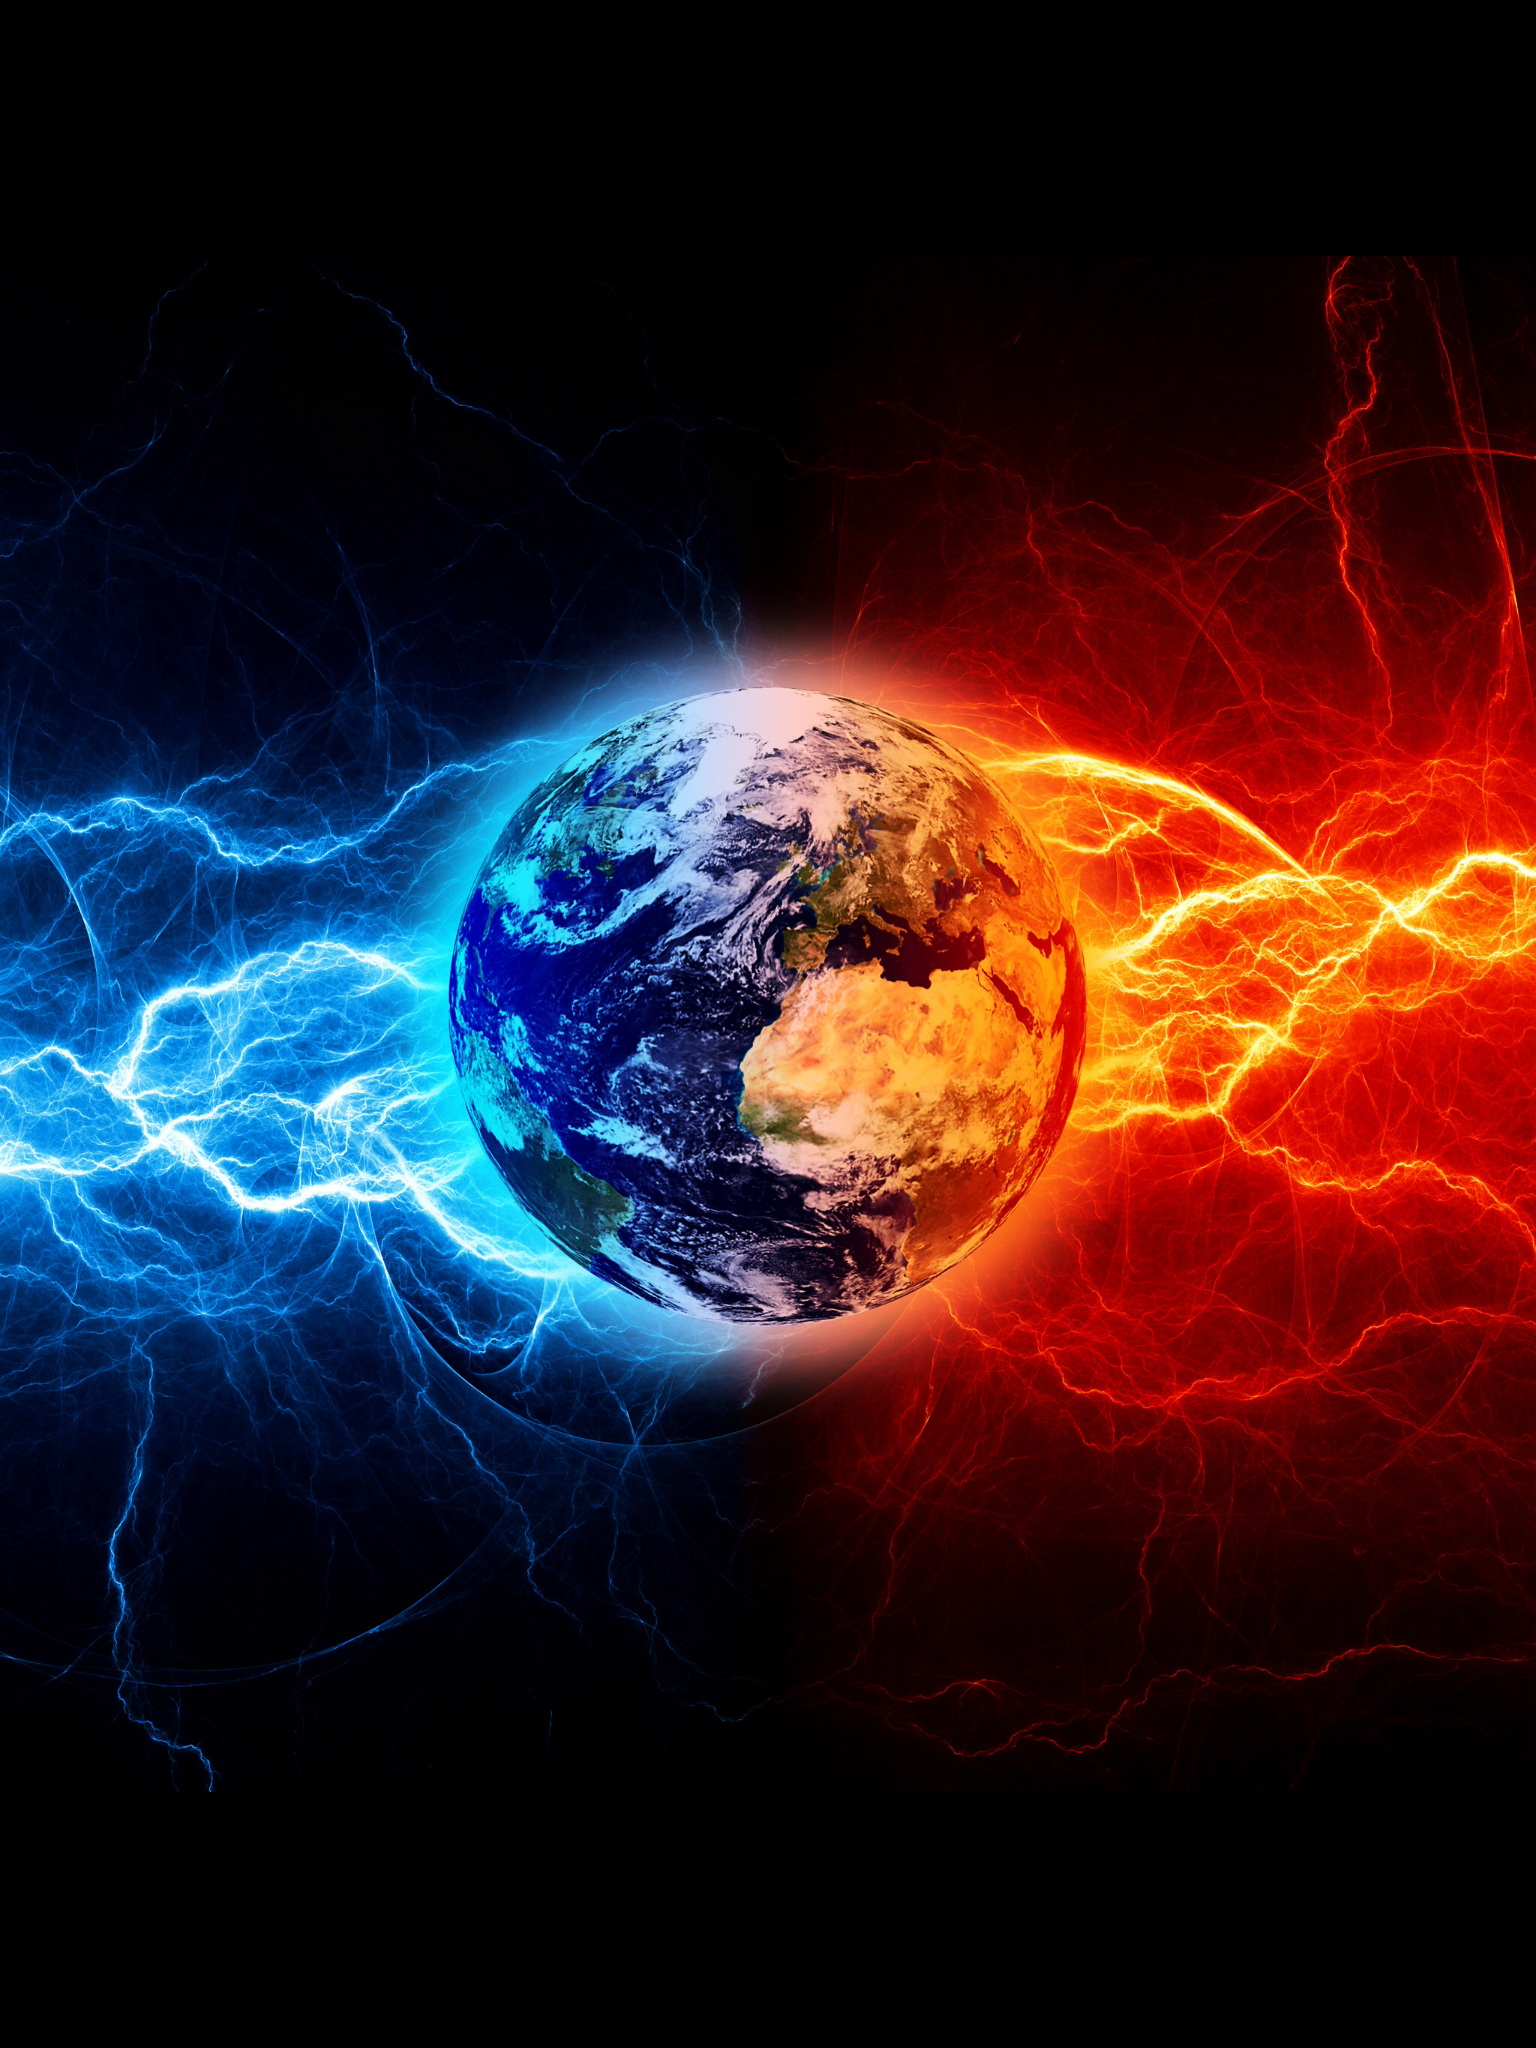 Fire Ice Fire And Ice Fire And Ice Wallpaper Earth